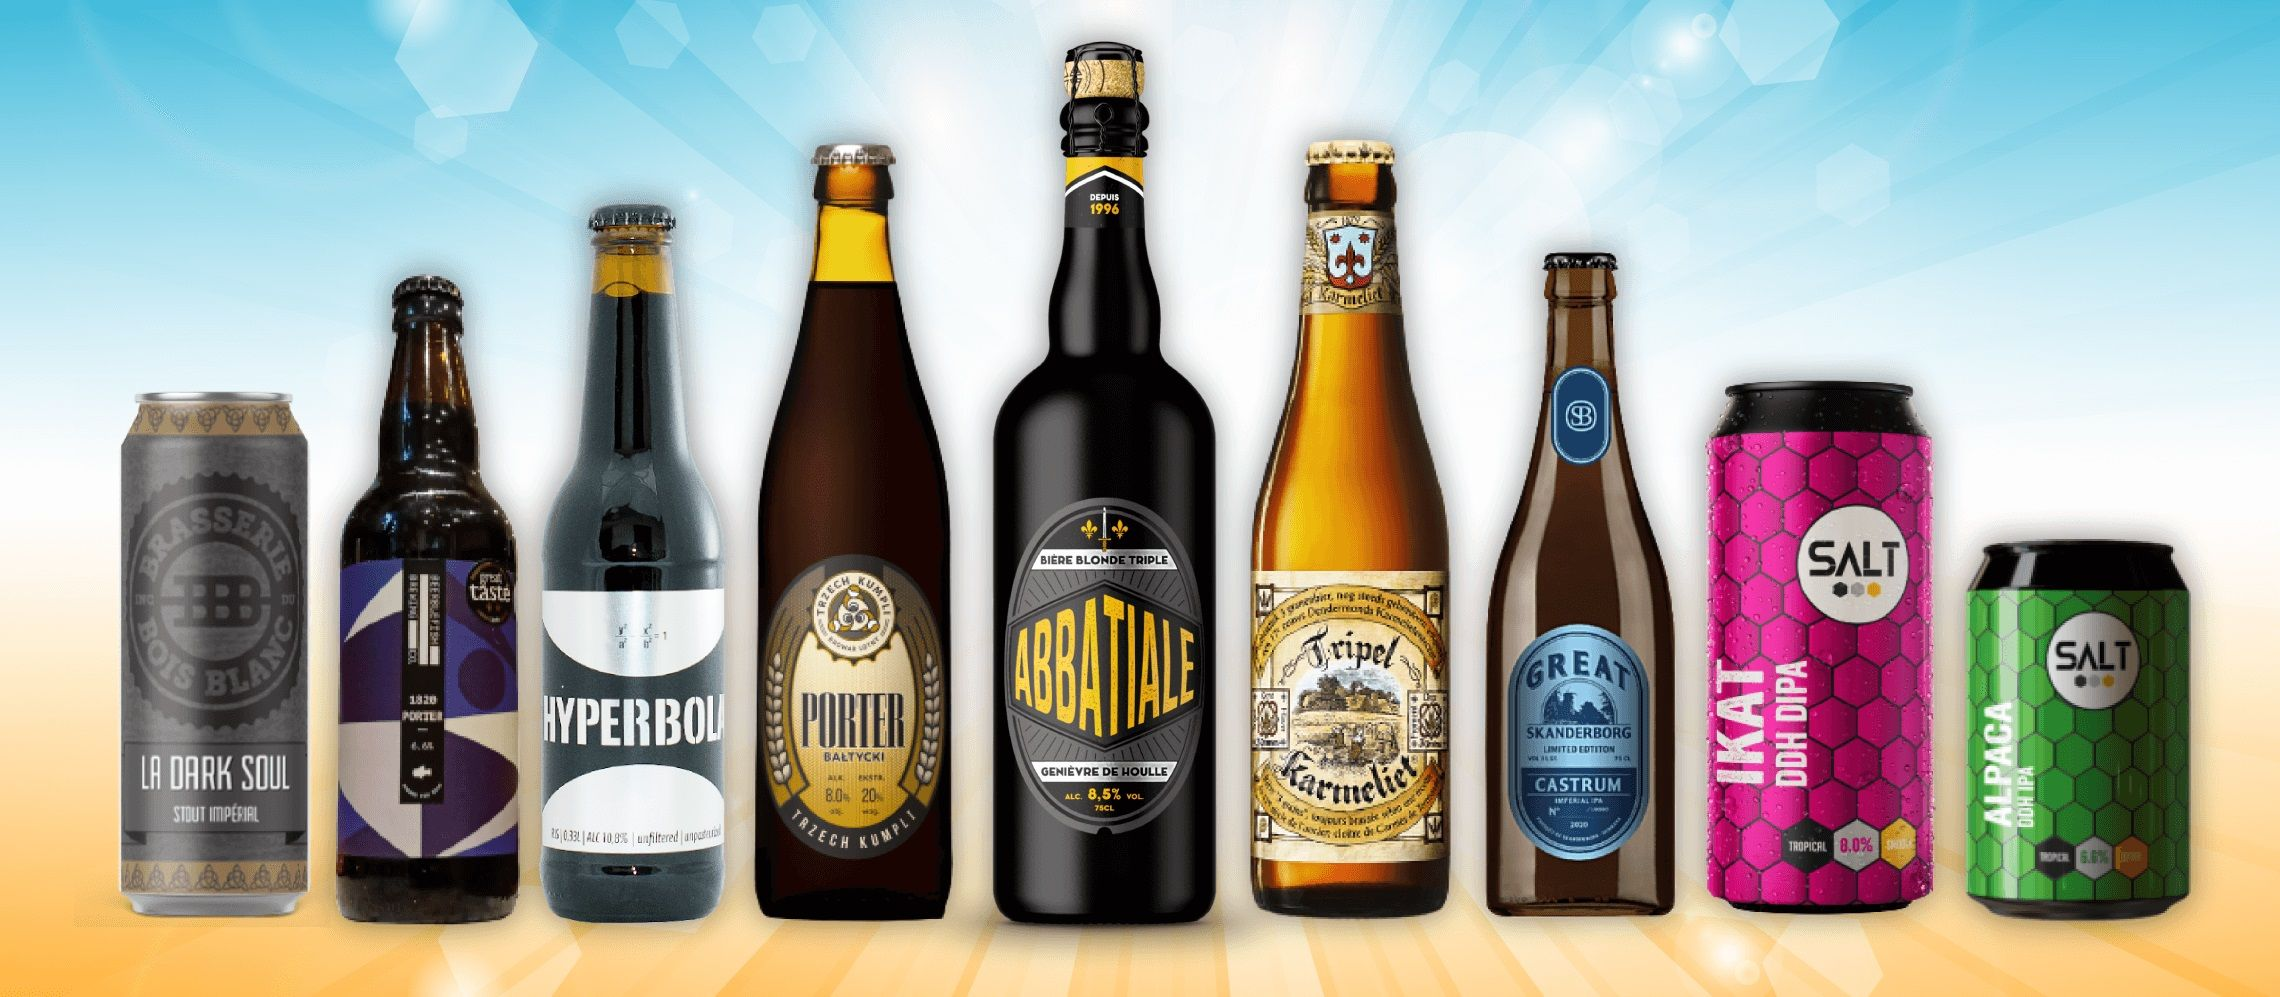 Photo for: Revealed! The Top 10 Award-Winning Beer Brands of 2021